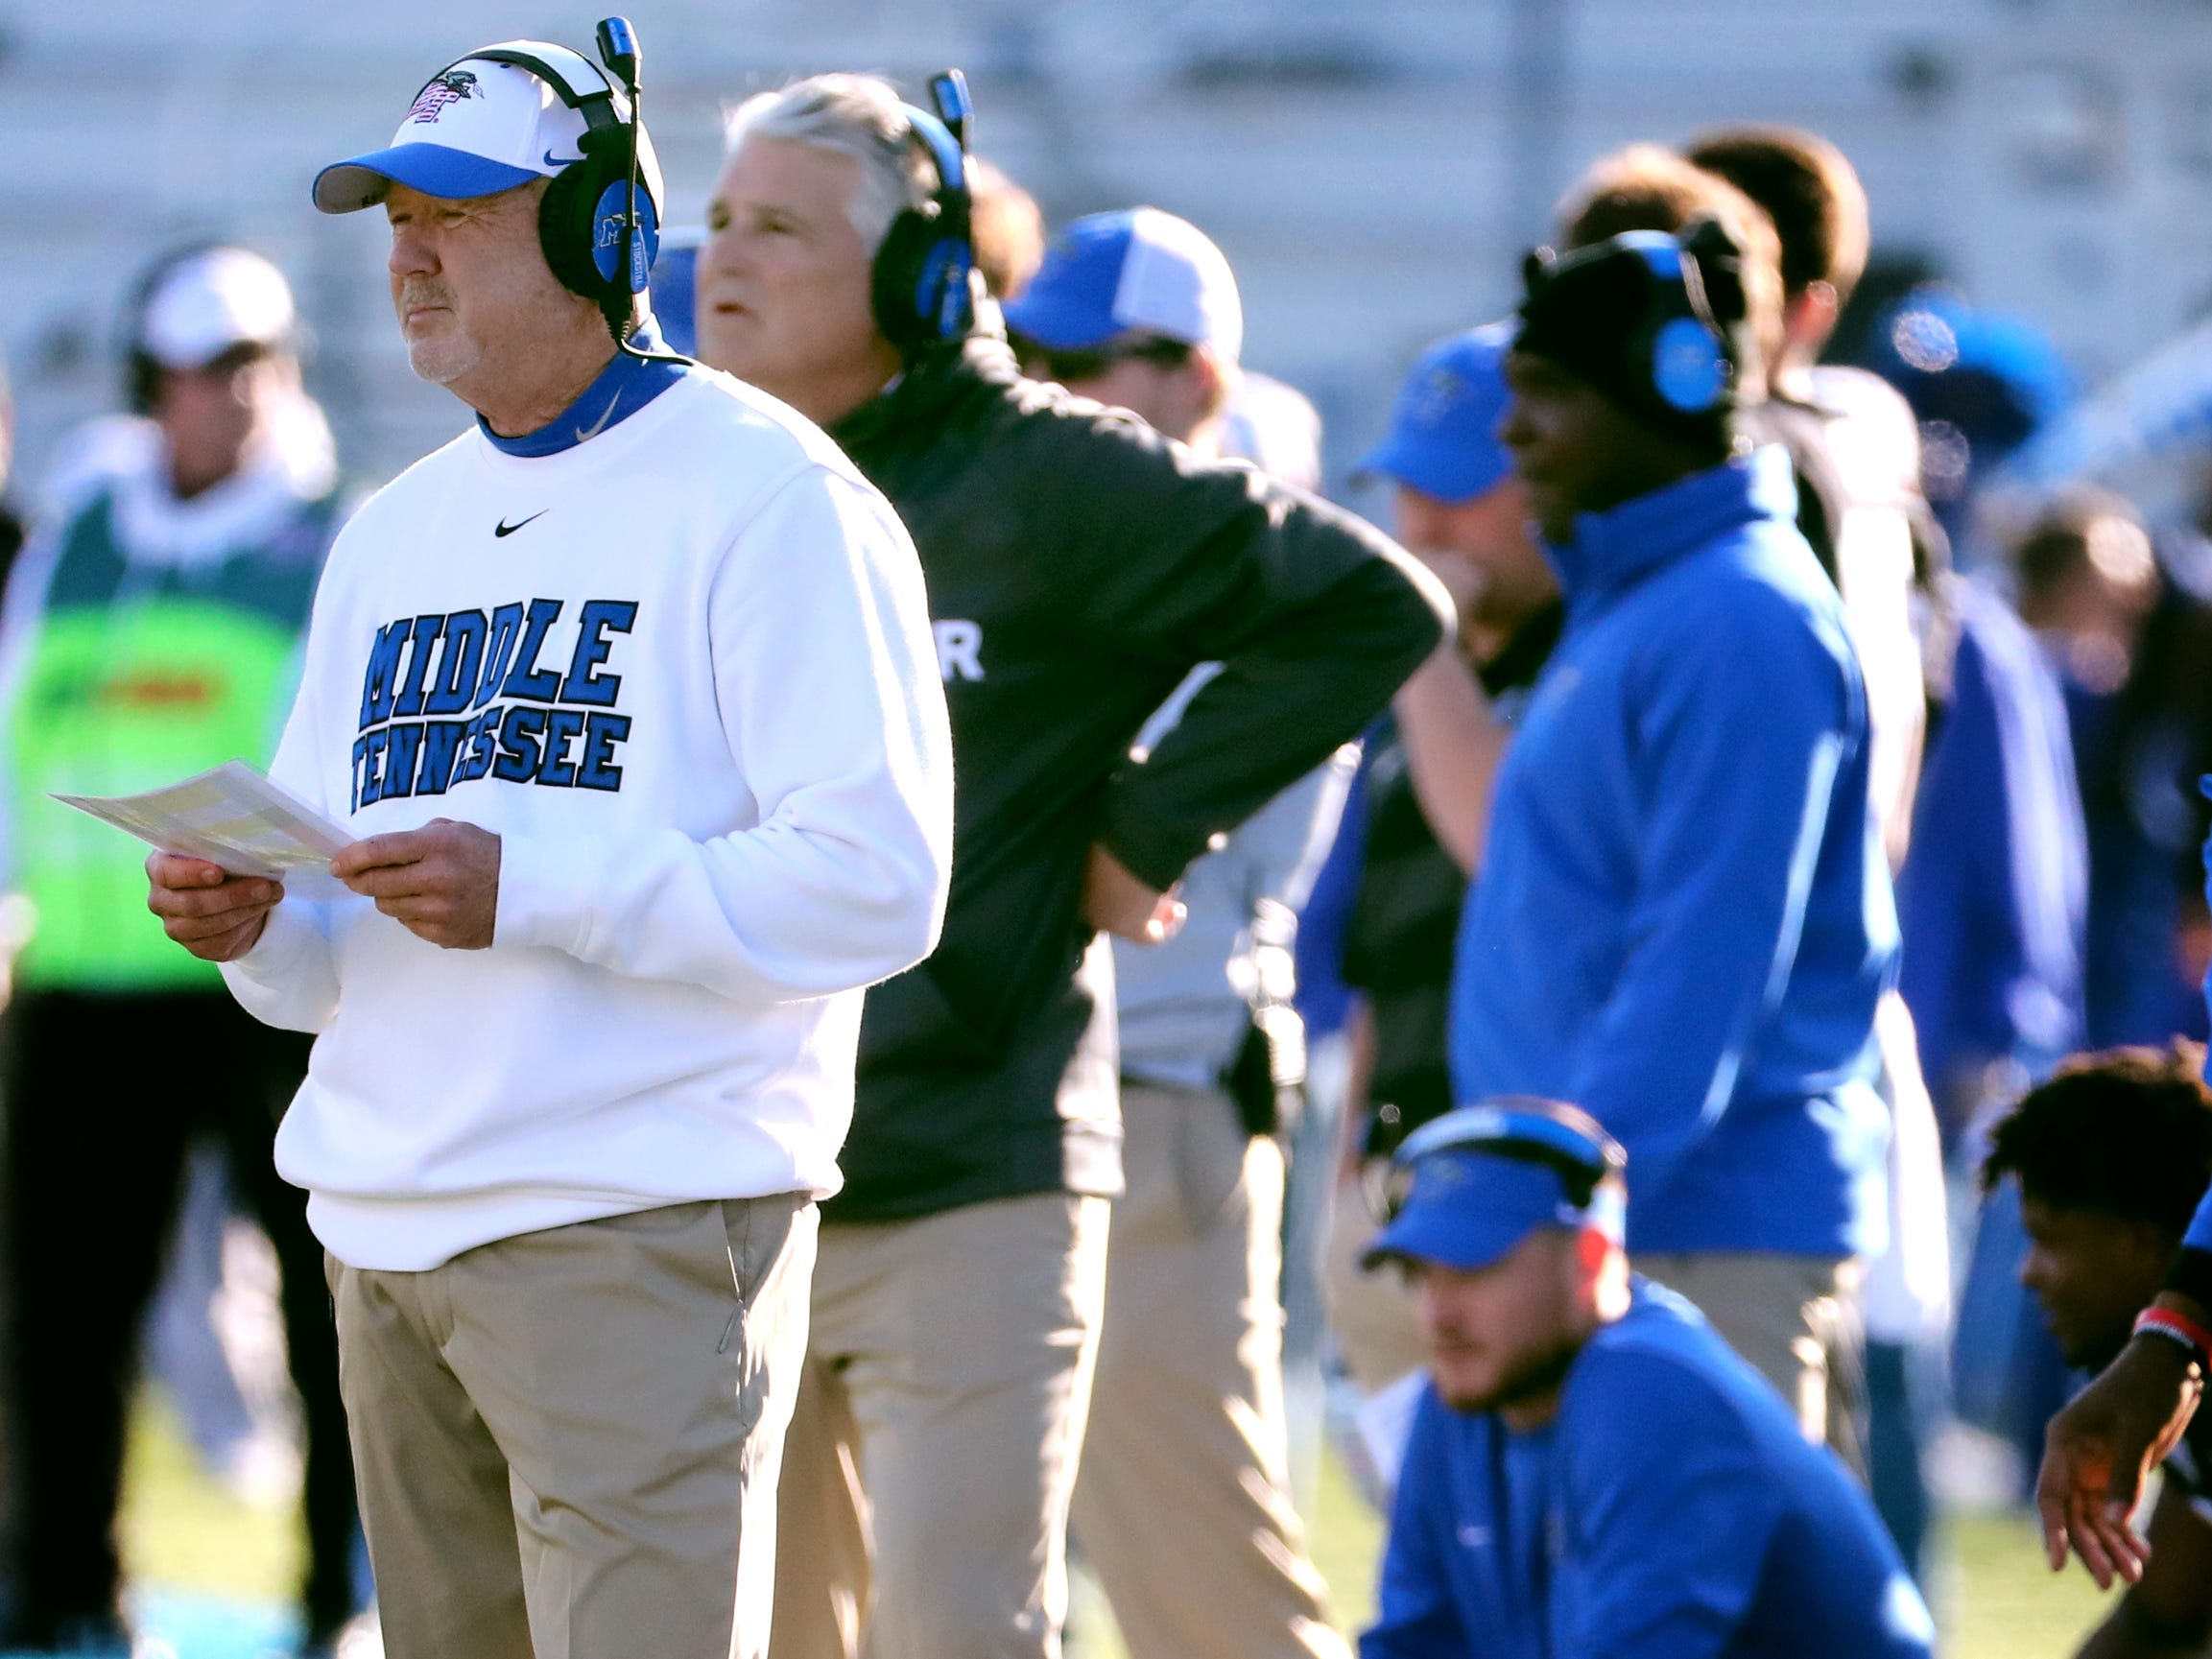 MTSU's head coach Rick Stockstill on the sidelines during the game against UAB at MTSU on Saturday, Nov. 24, 2018.